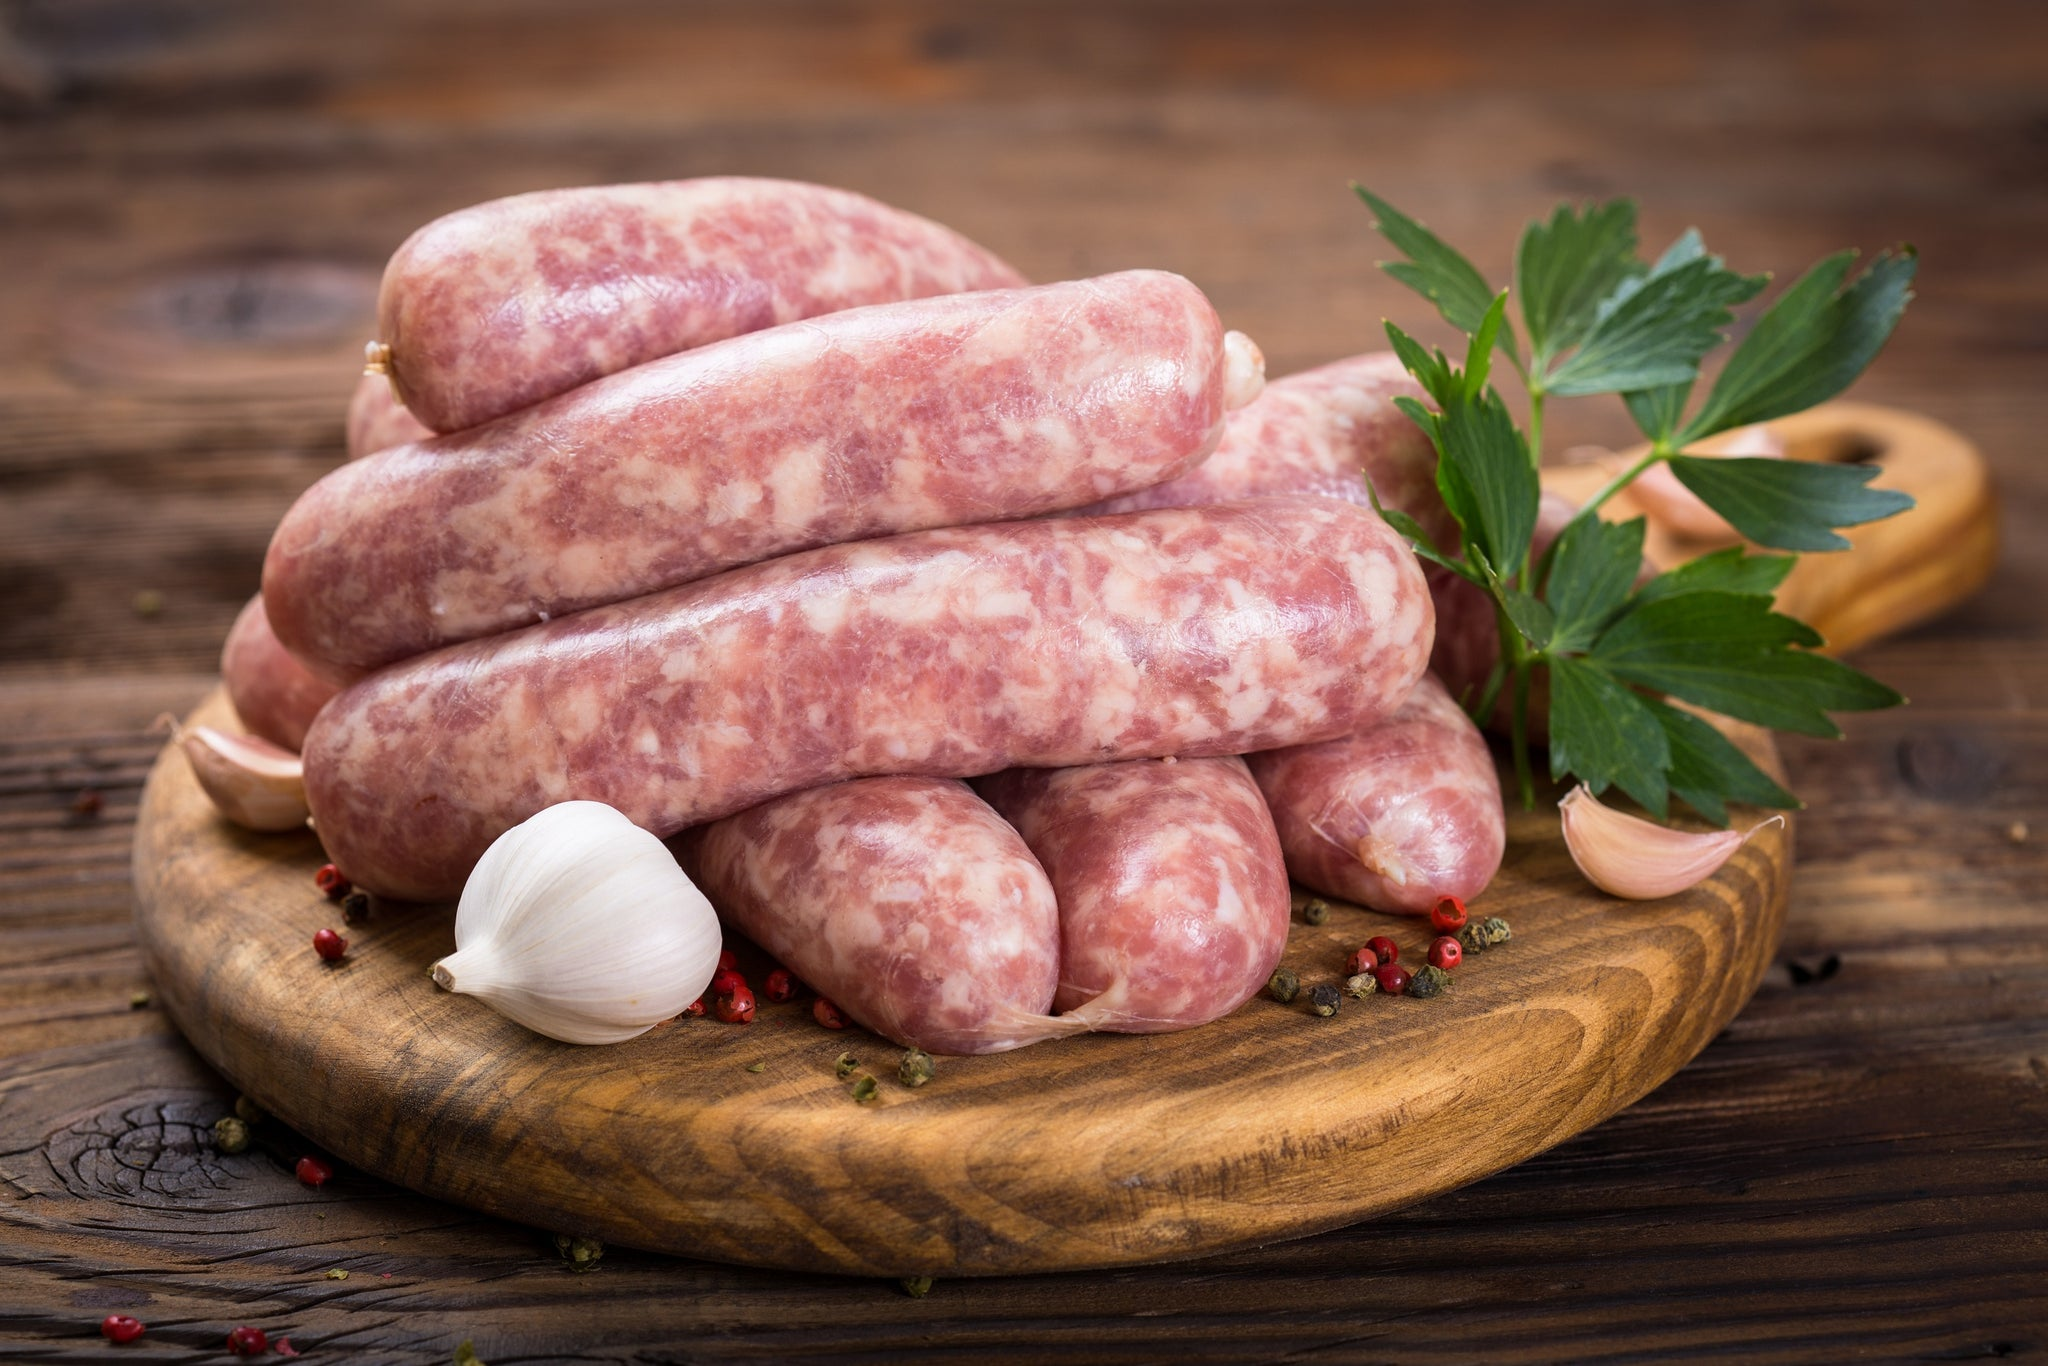 Turkey Sausages Healthy Choice